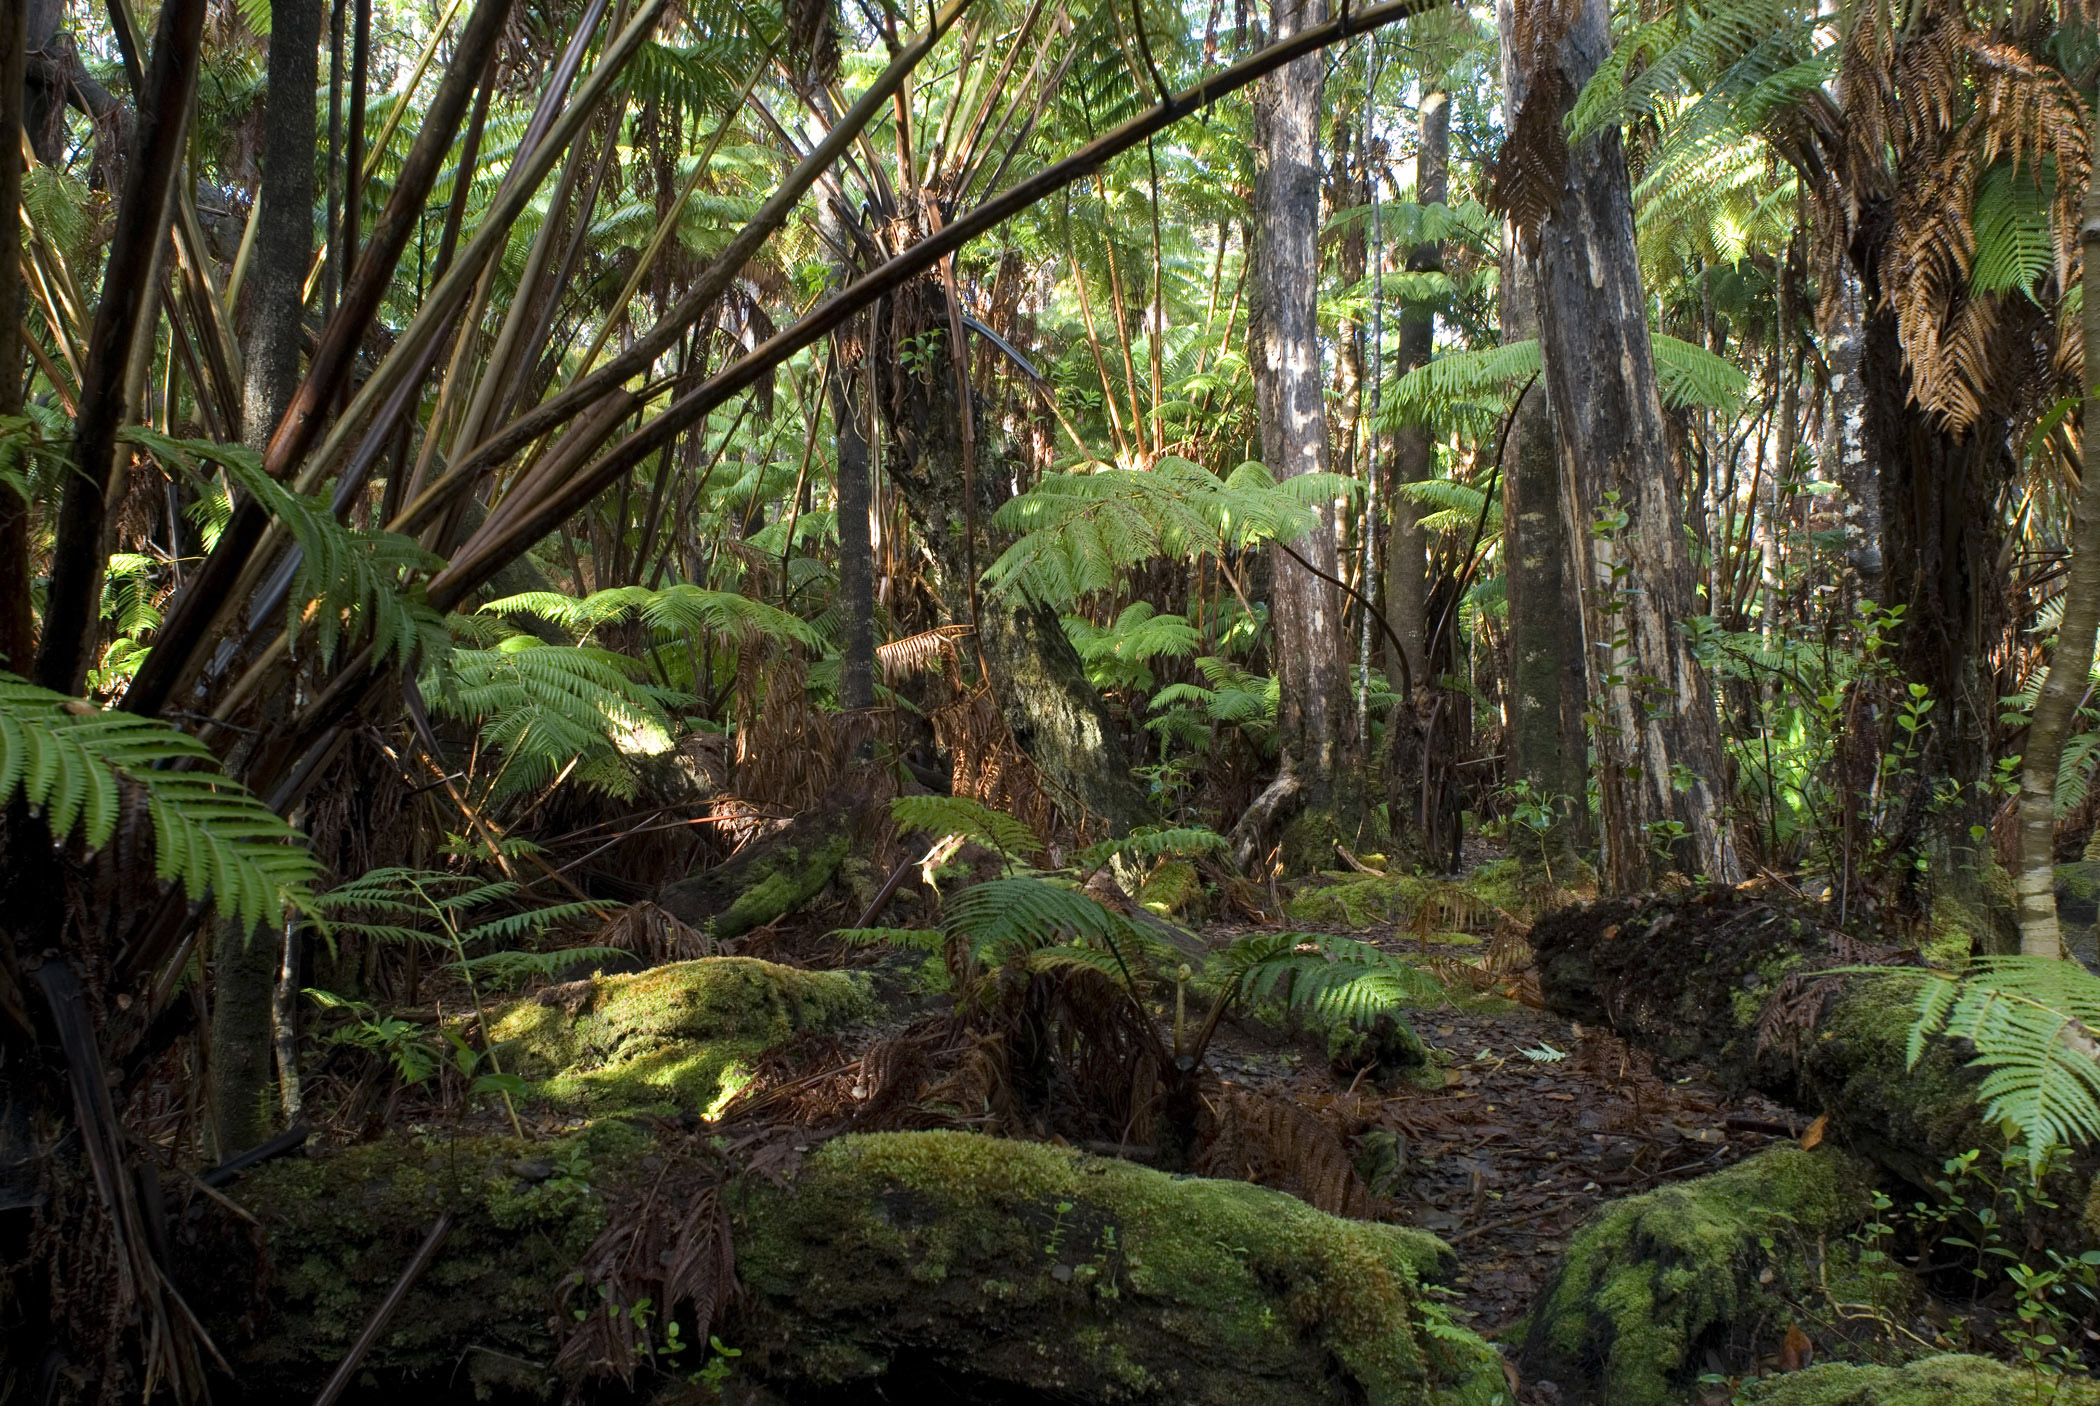 Hawaiian rainforest background with dense trees and lush green ferns and vegetation covering the floor